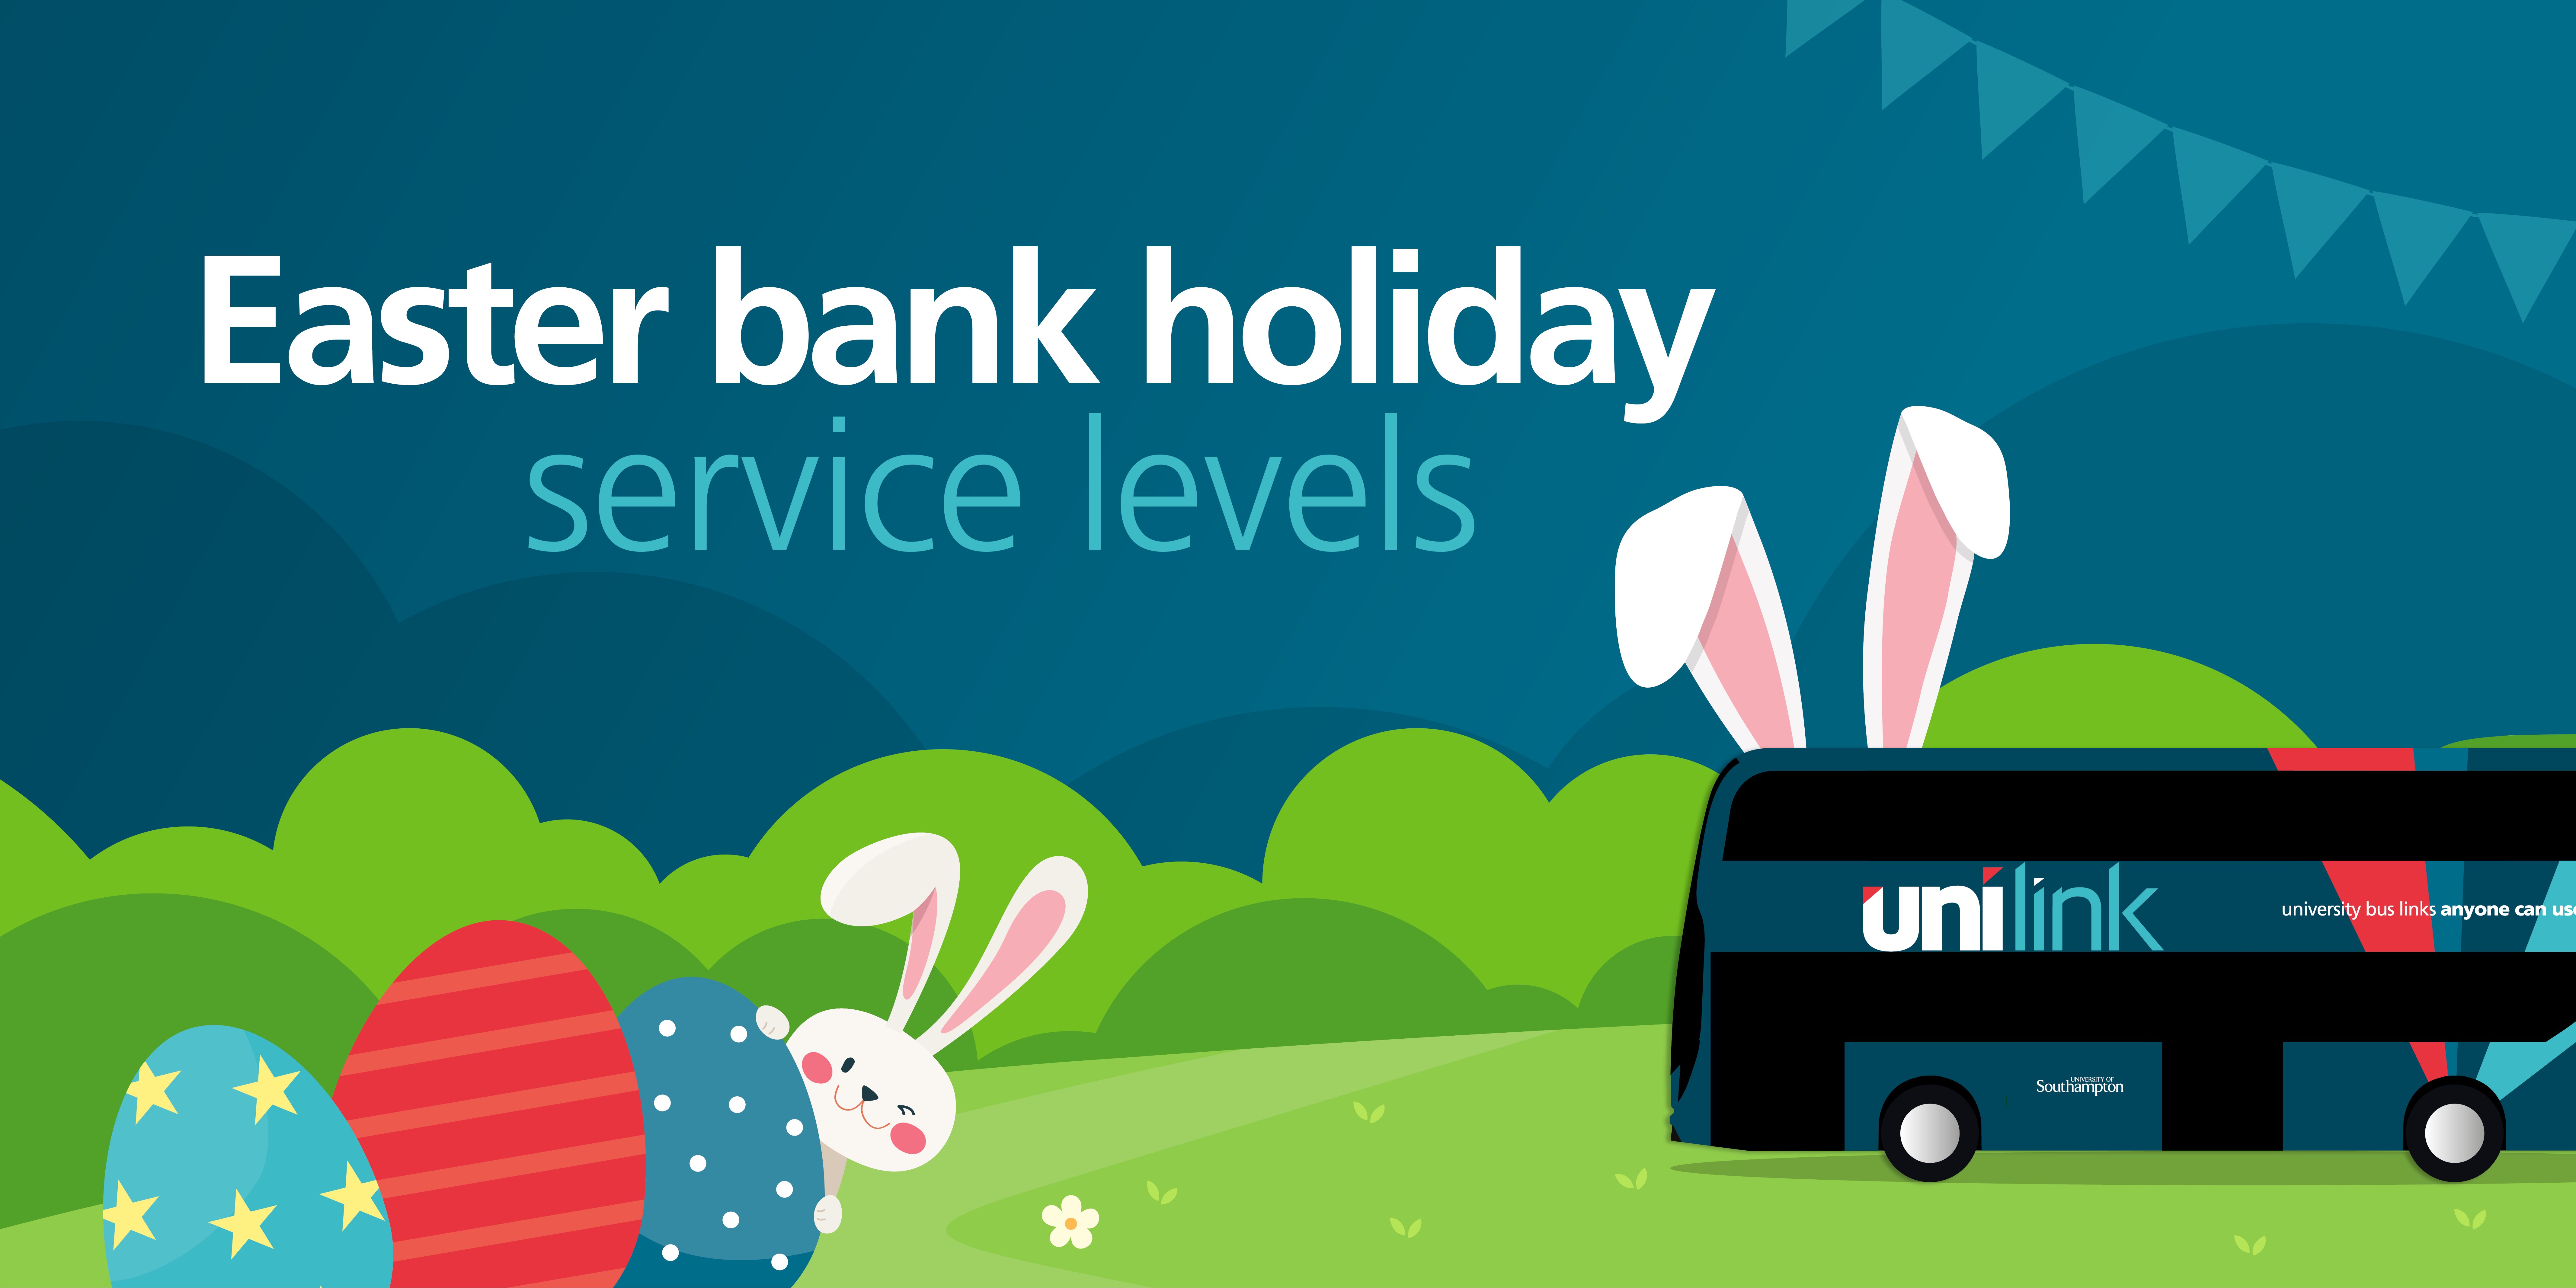 Image of a Unilink bus with text reading 'Easter bank holiday service levels'